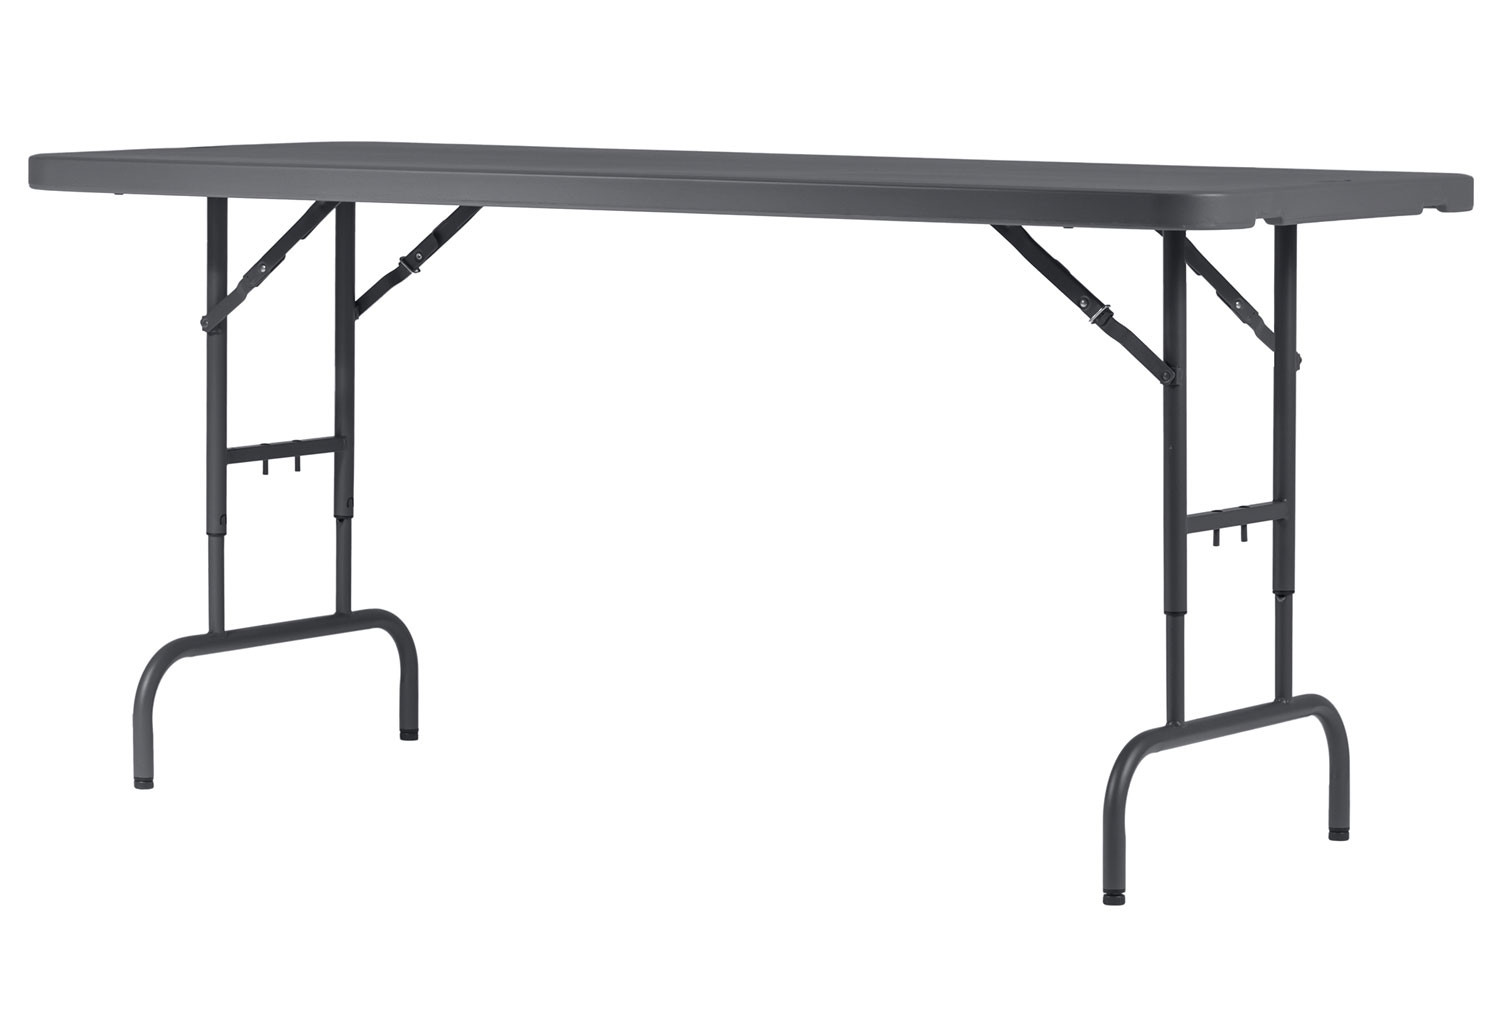 Valence Height Adjustable Rectangular Folding Table Furniture At Work